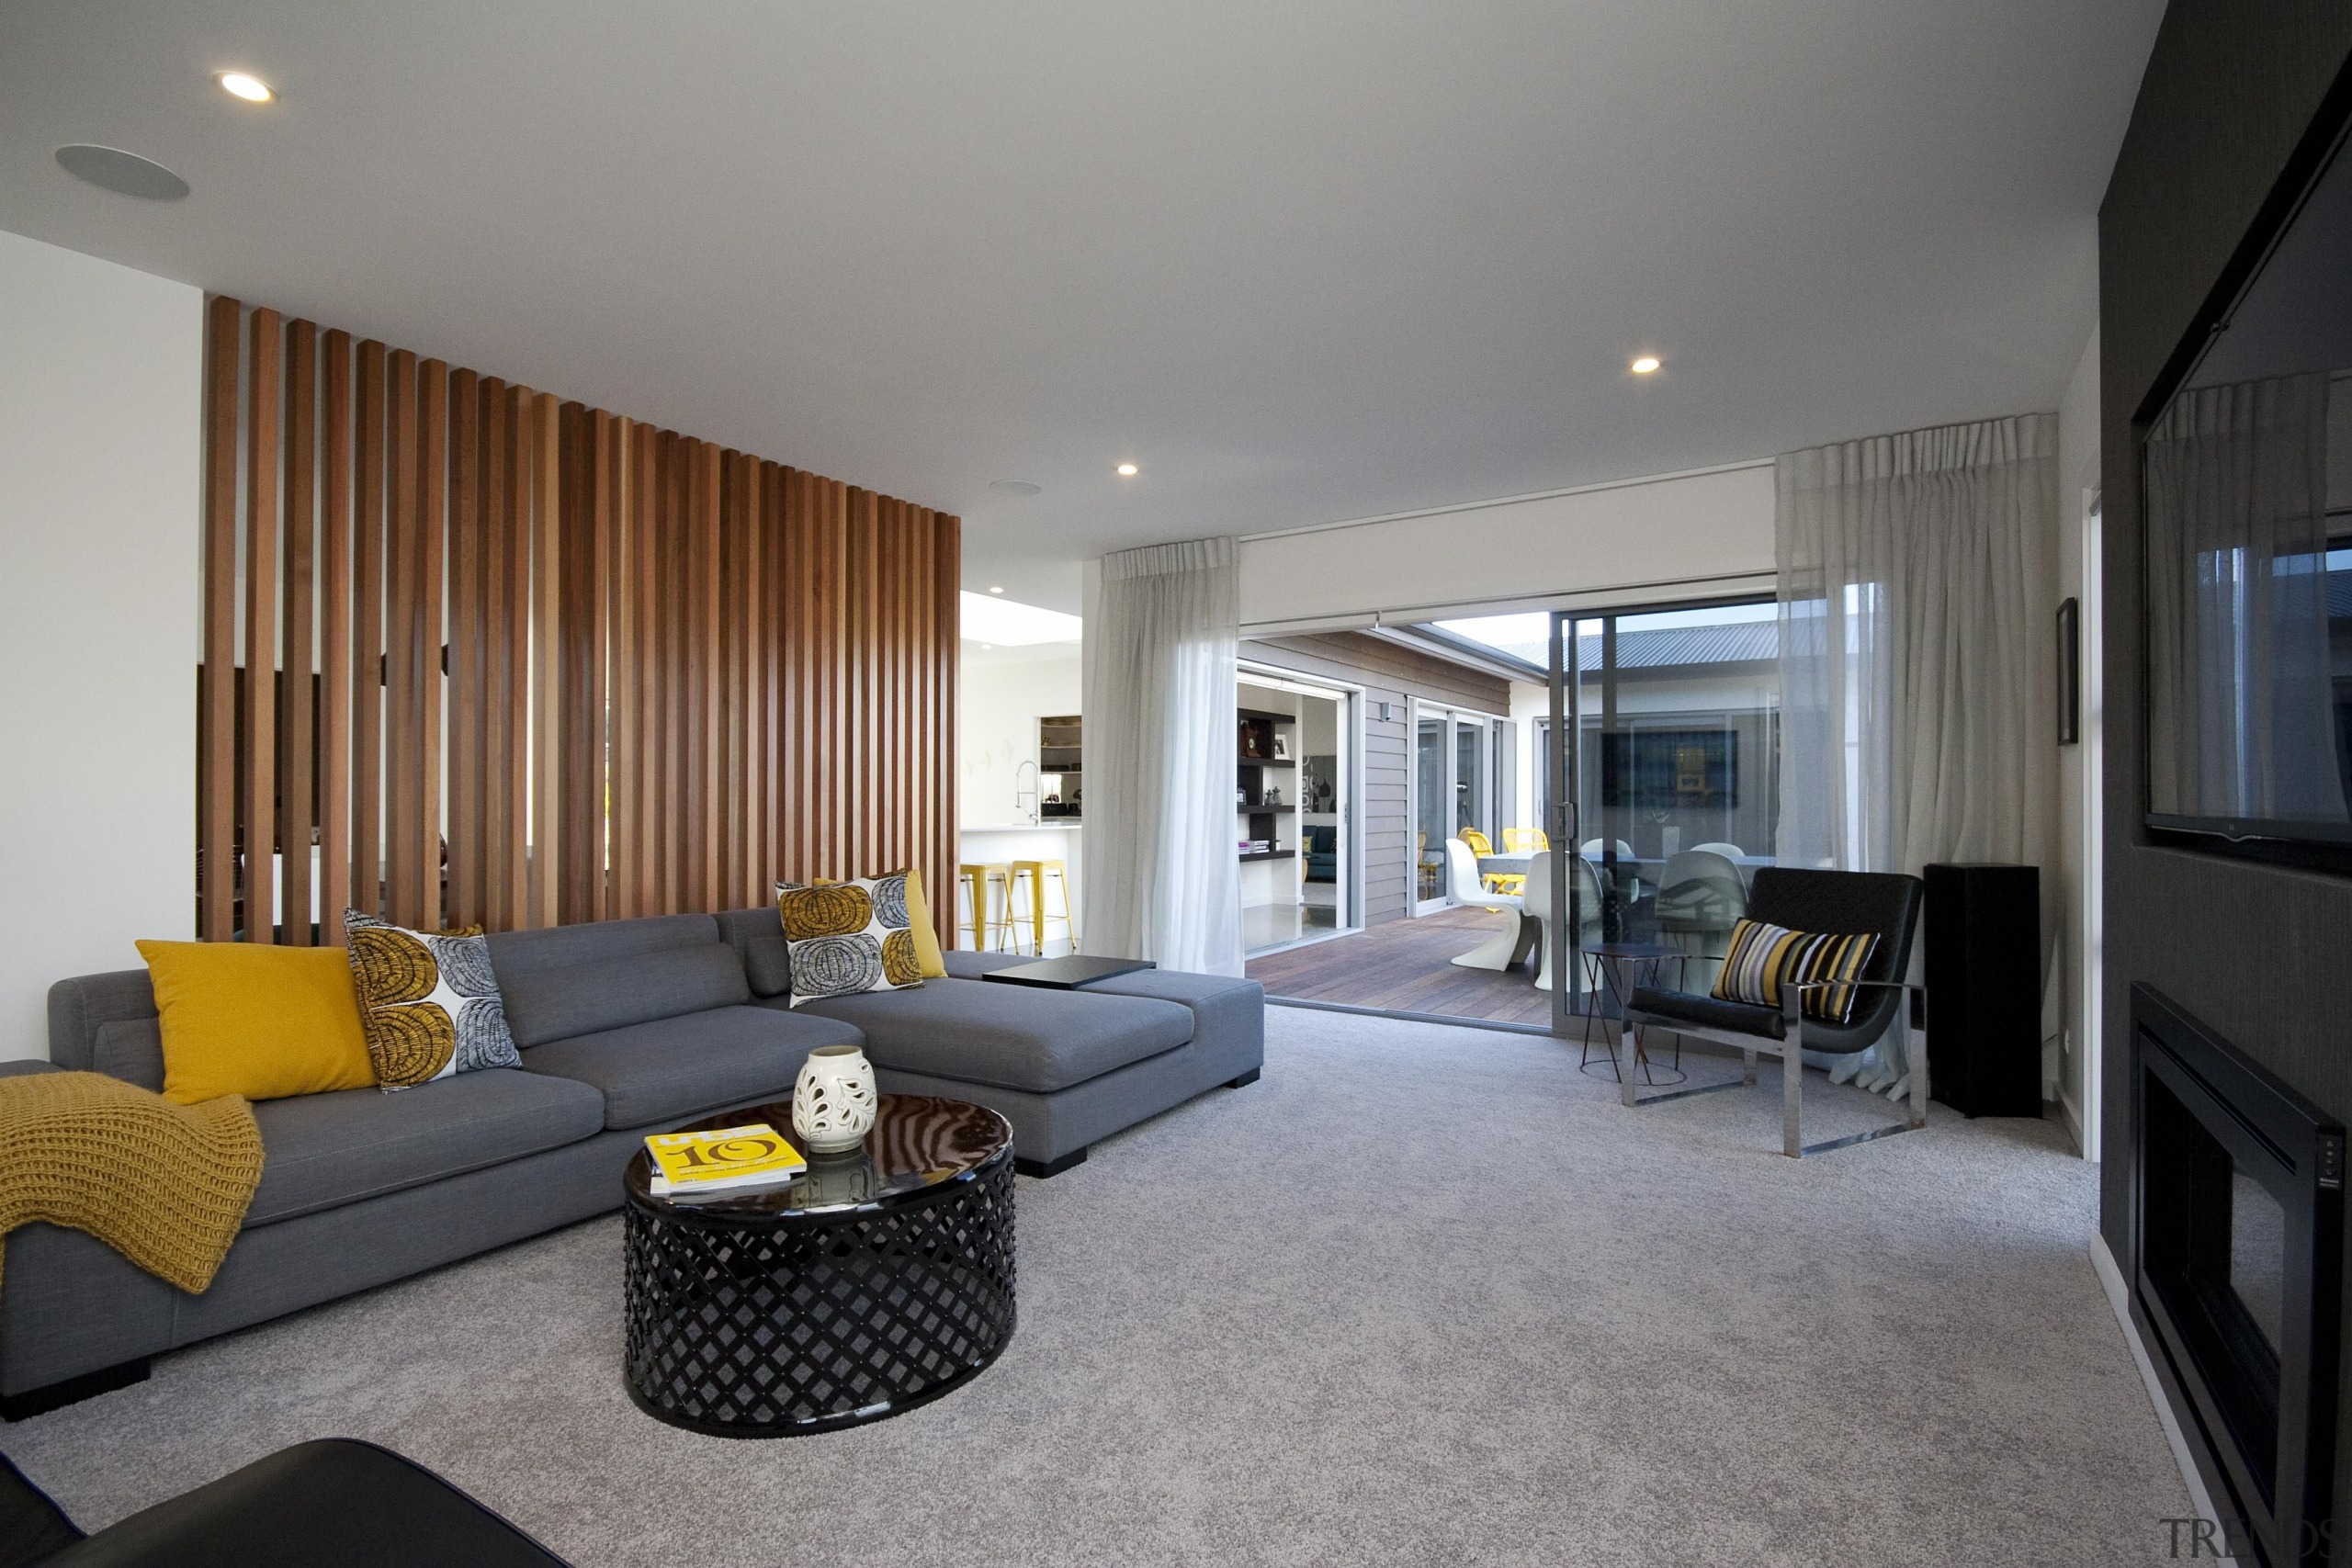 Living room with 1960's flavour featuring hit and apartment, architecture, ceiling, house, interior design, living room, property, real estate, room, suite, gray